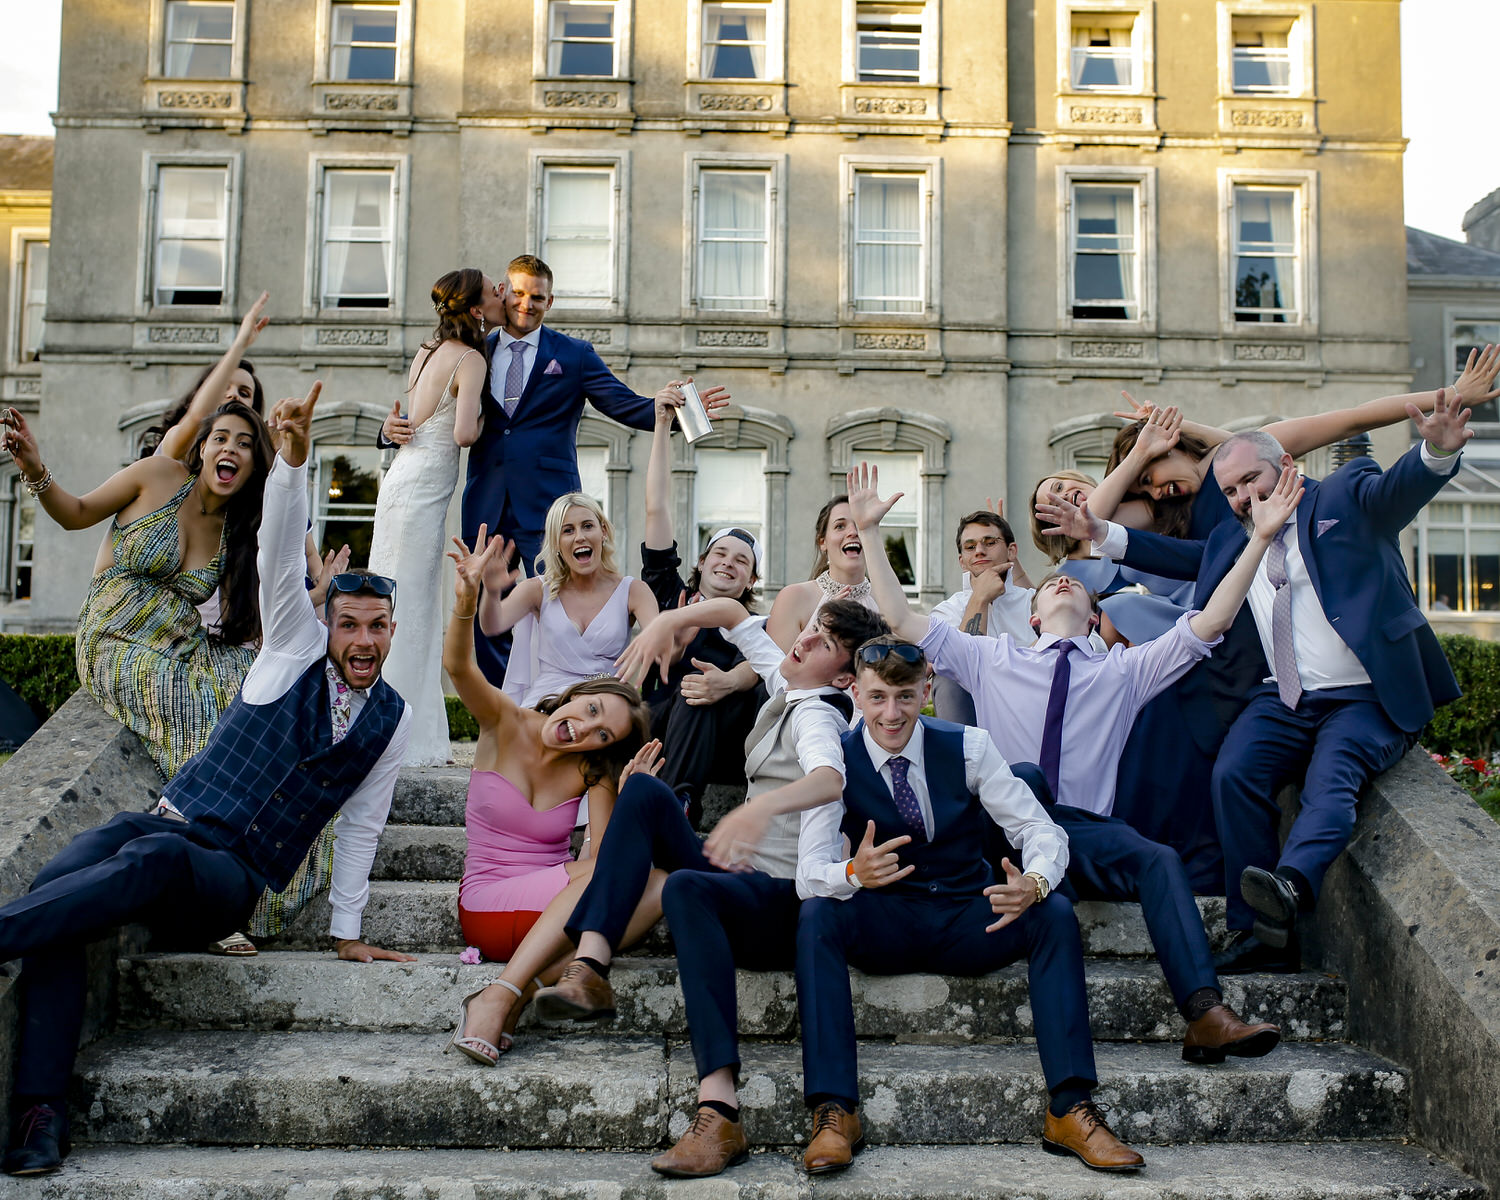 waterford_faithlegg_wedding_photographer_goldenmonentsweddingphotography_a564.jpg